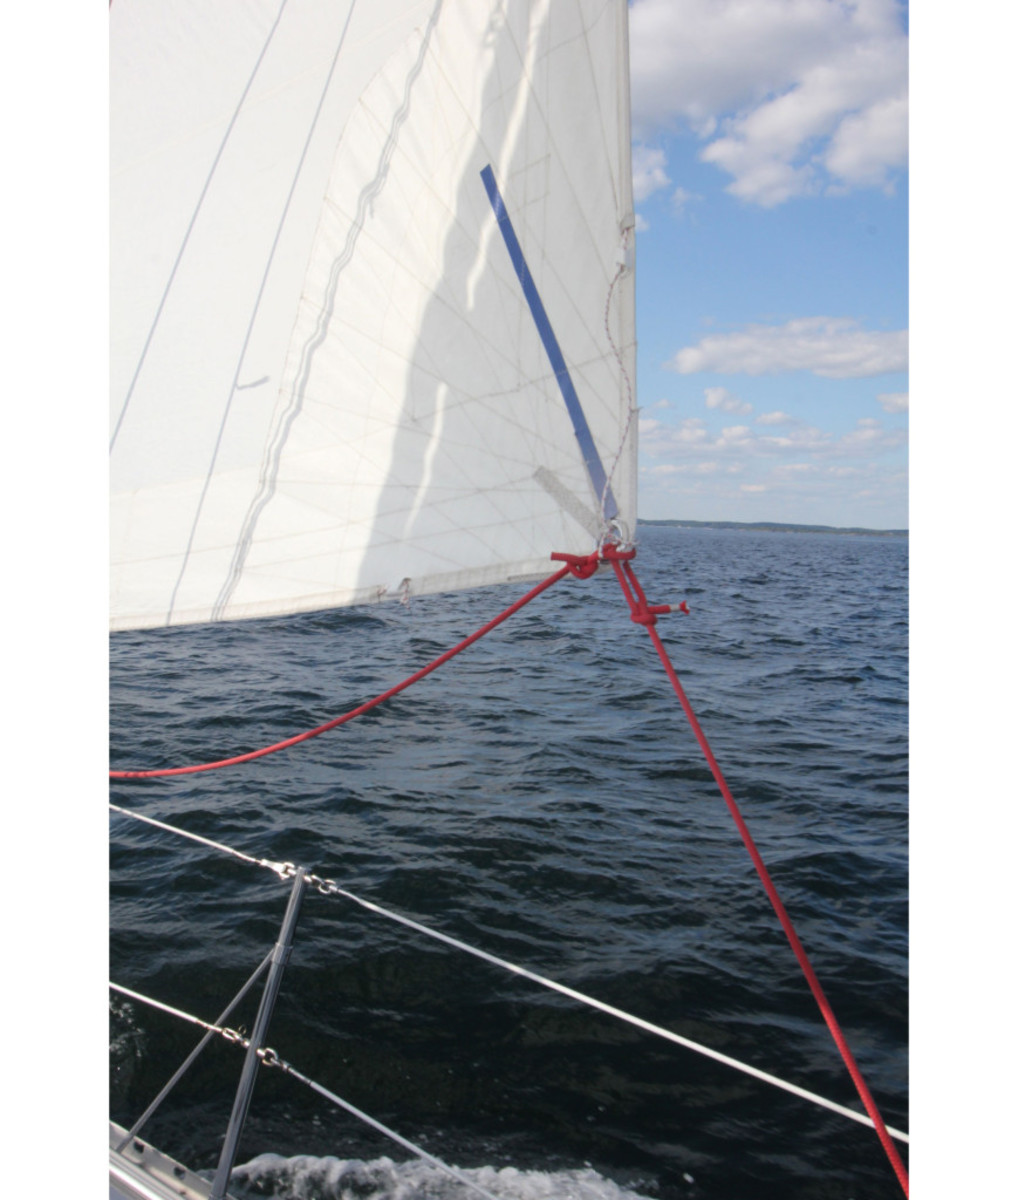 The stripe points the way to good sail trim